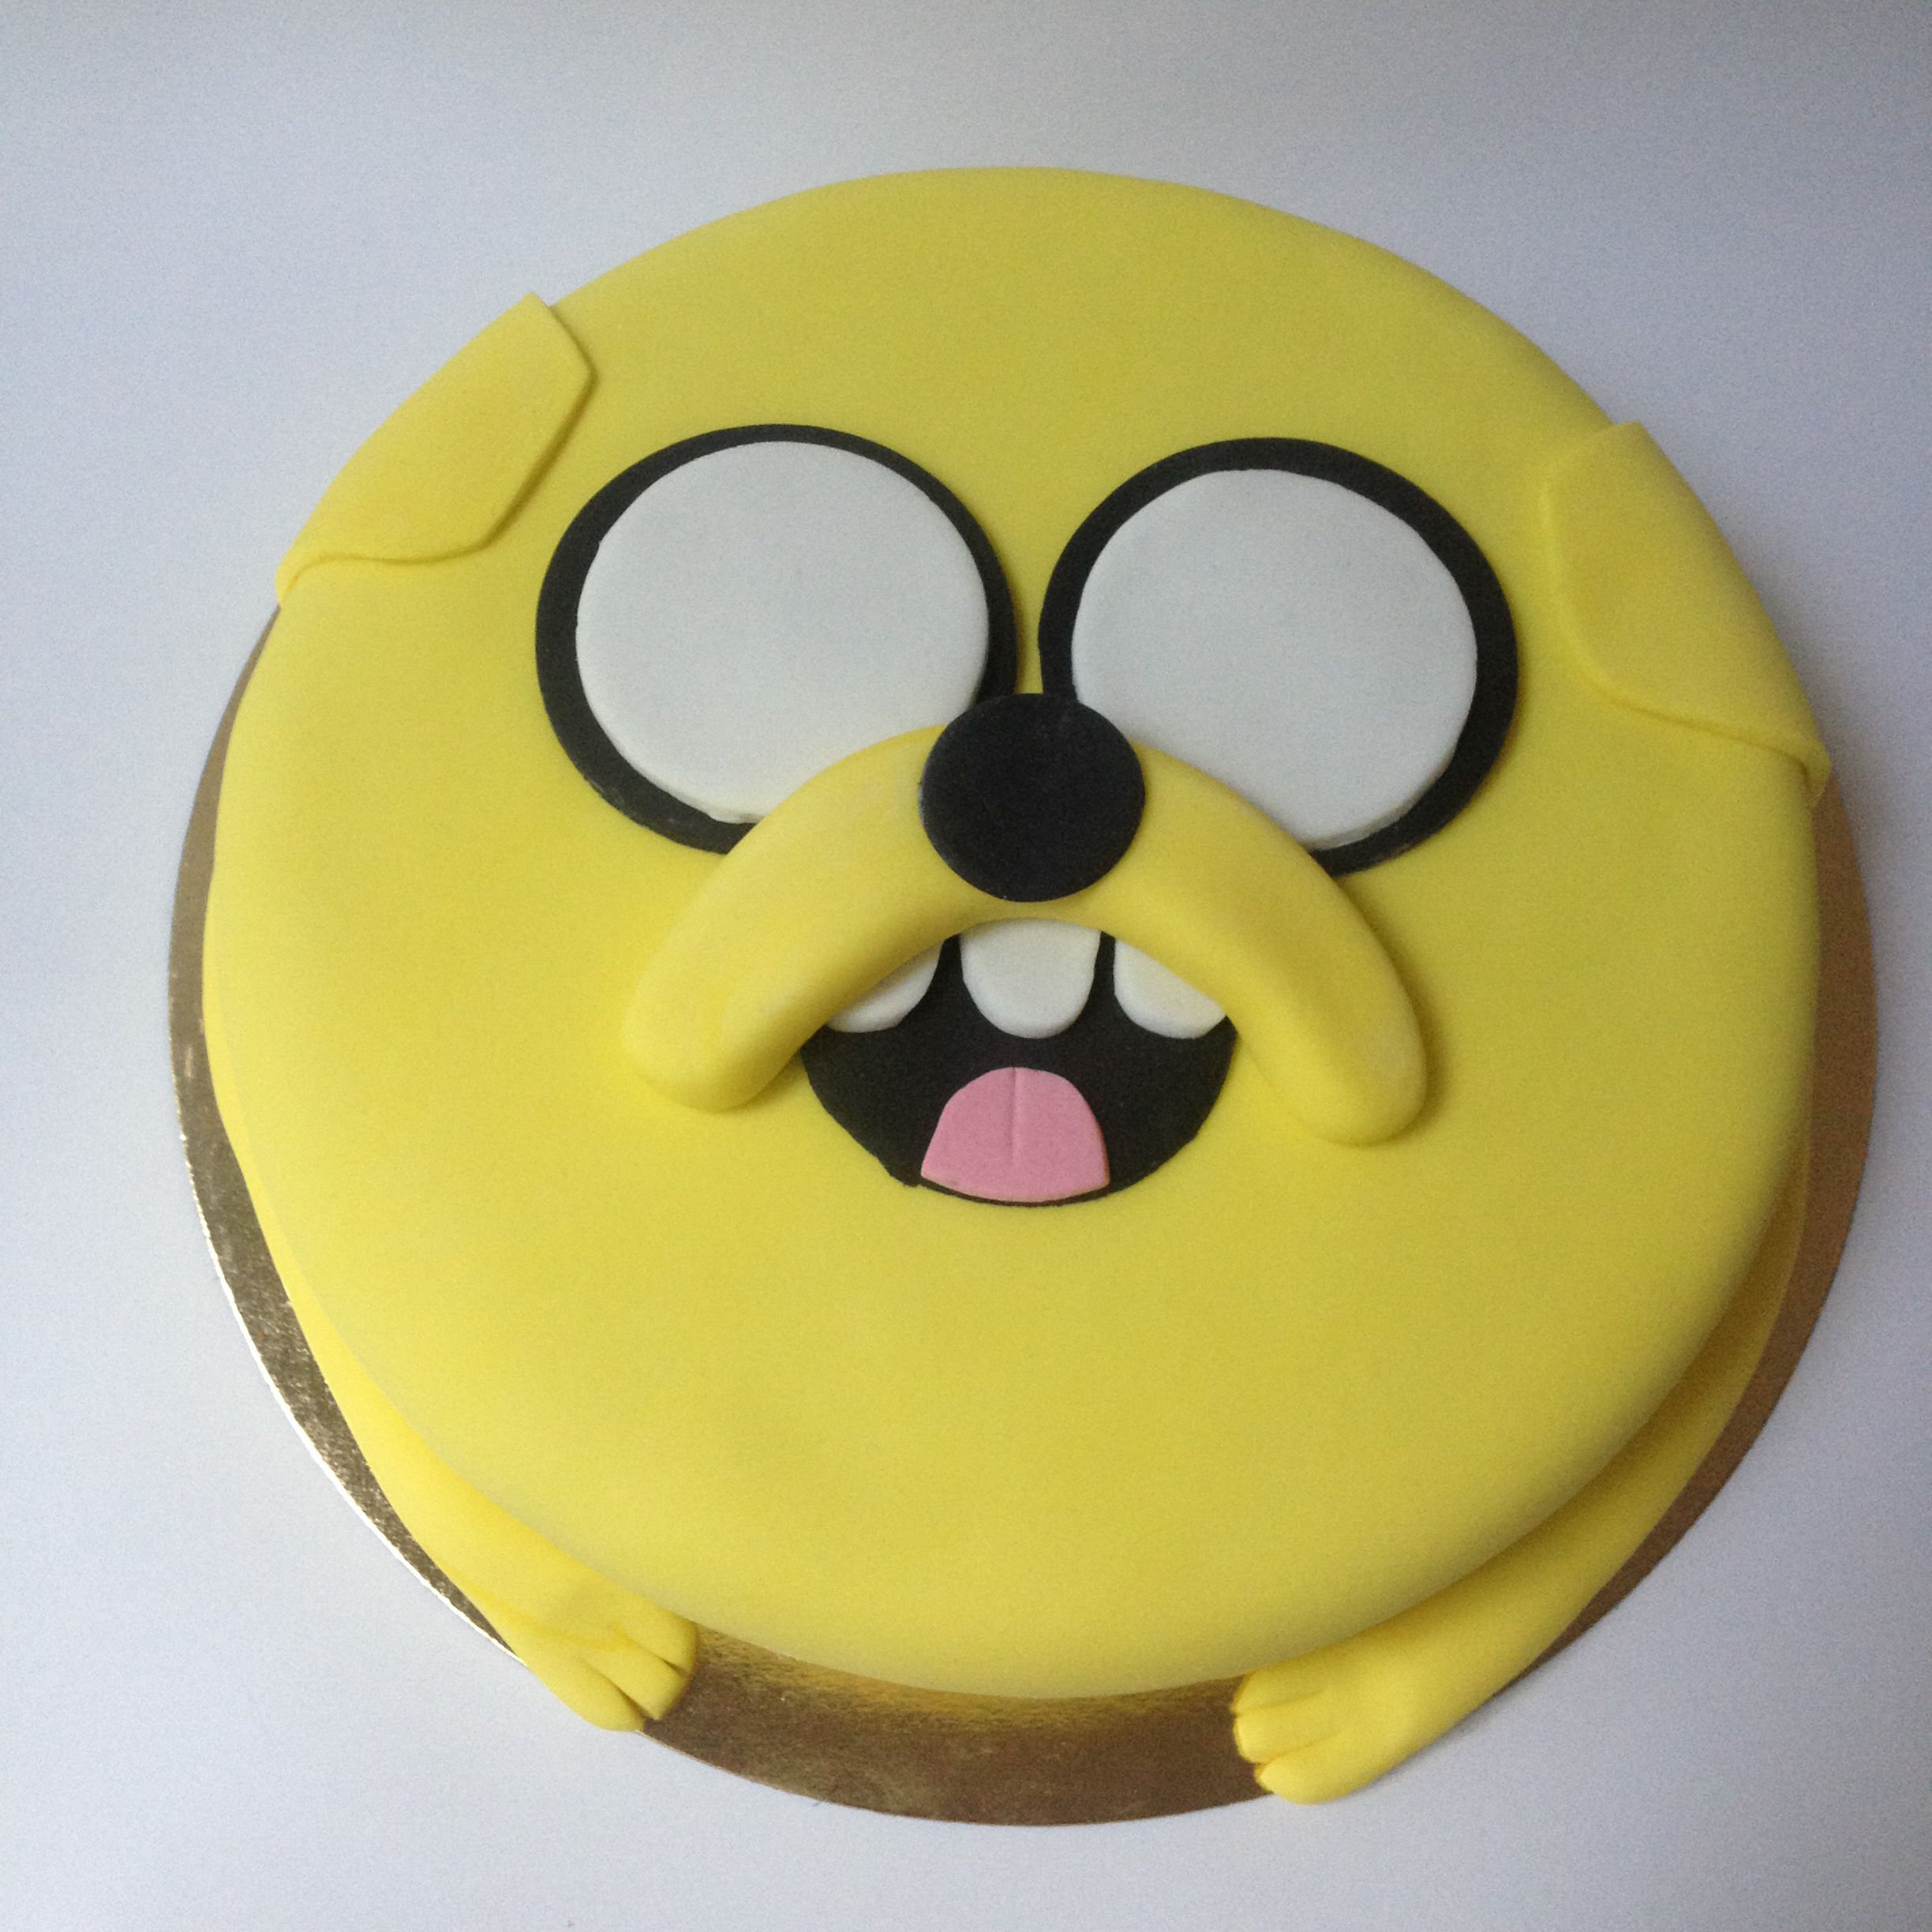 Jake the dog / adventure time cake www.loresbakery.com | Proyectos ...